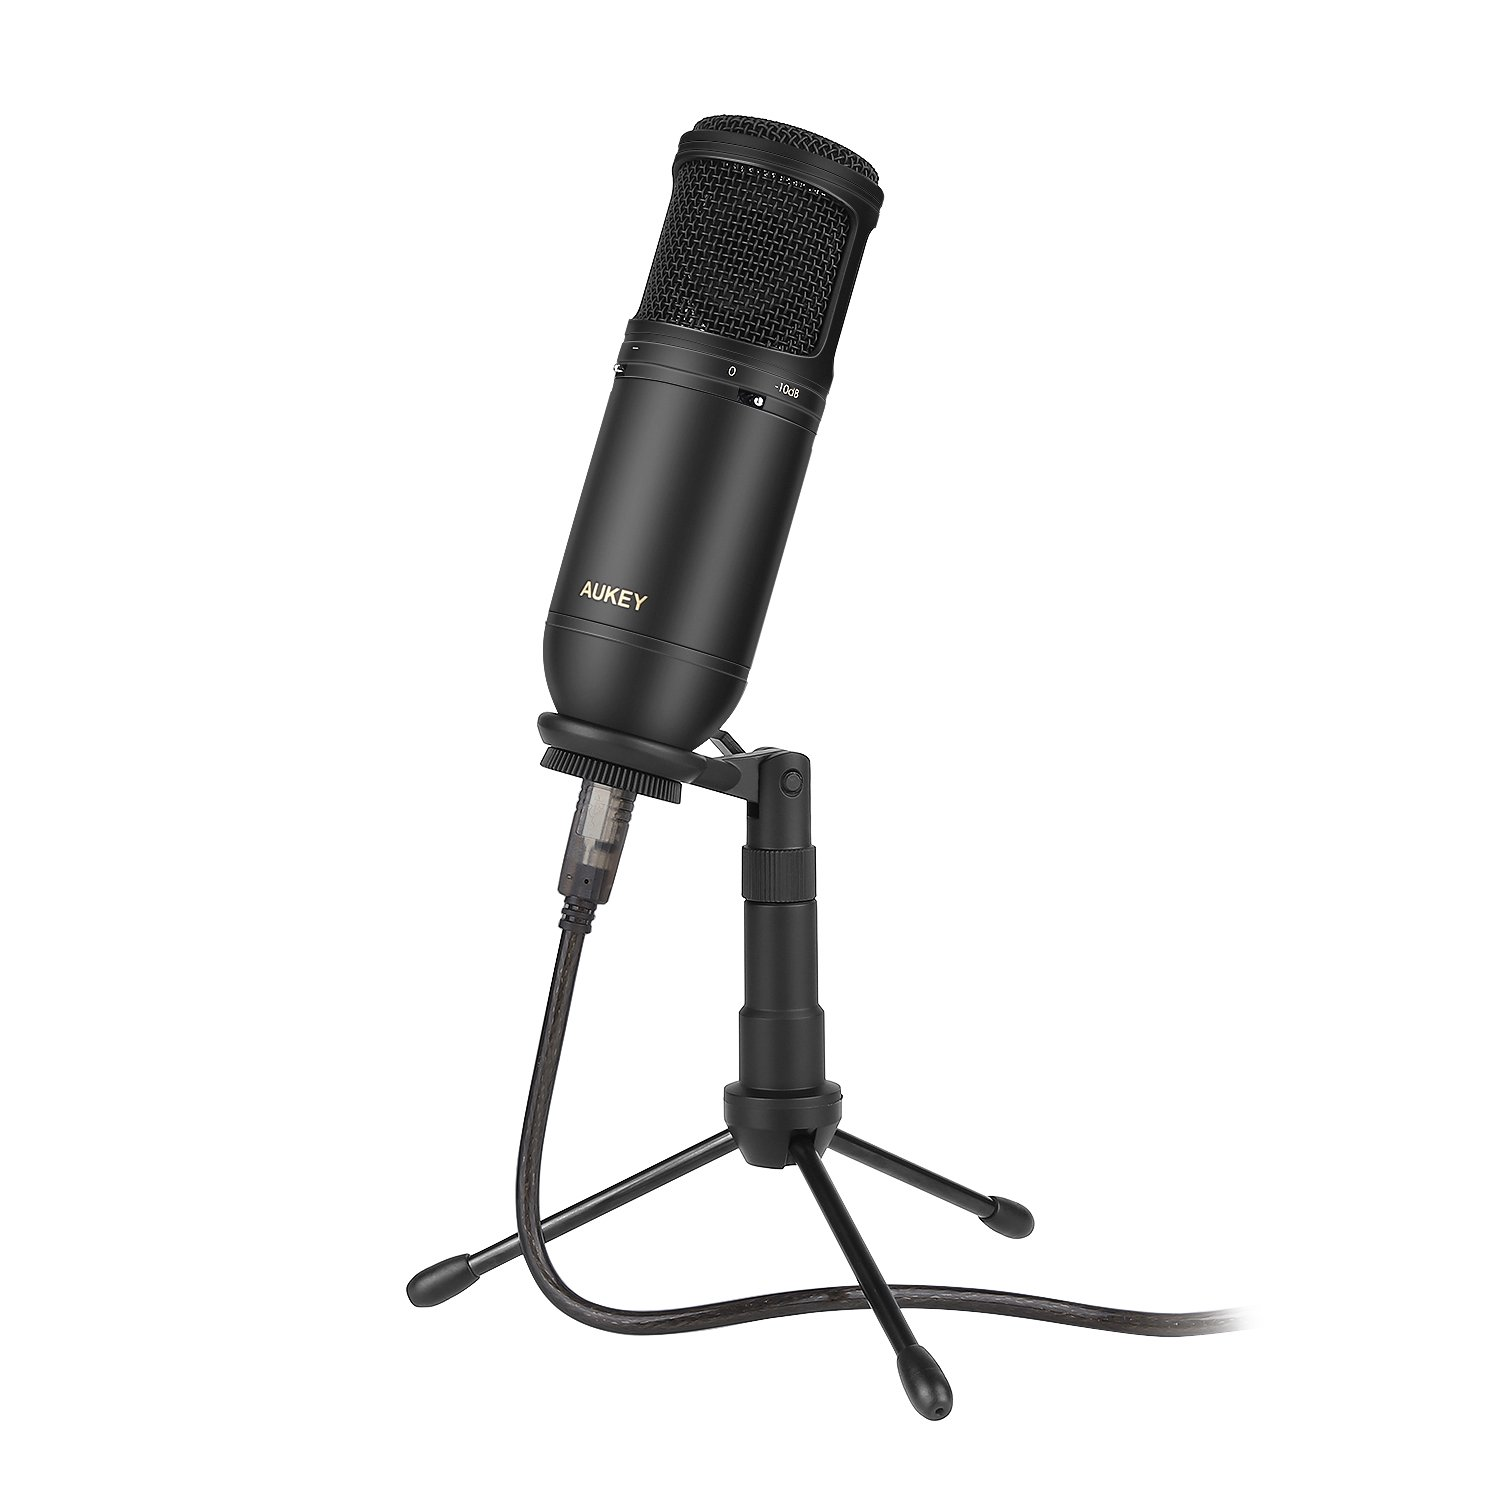 AUKEY USB Condenser Microphone for Recording, Cardioid Microphone with Low Cut & PAD Switch and Tripod Stand for Mac, PC and Computer by AUKEY